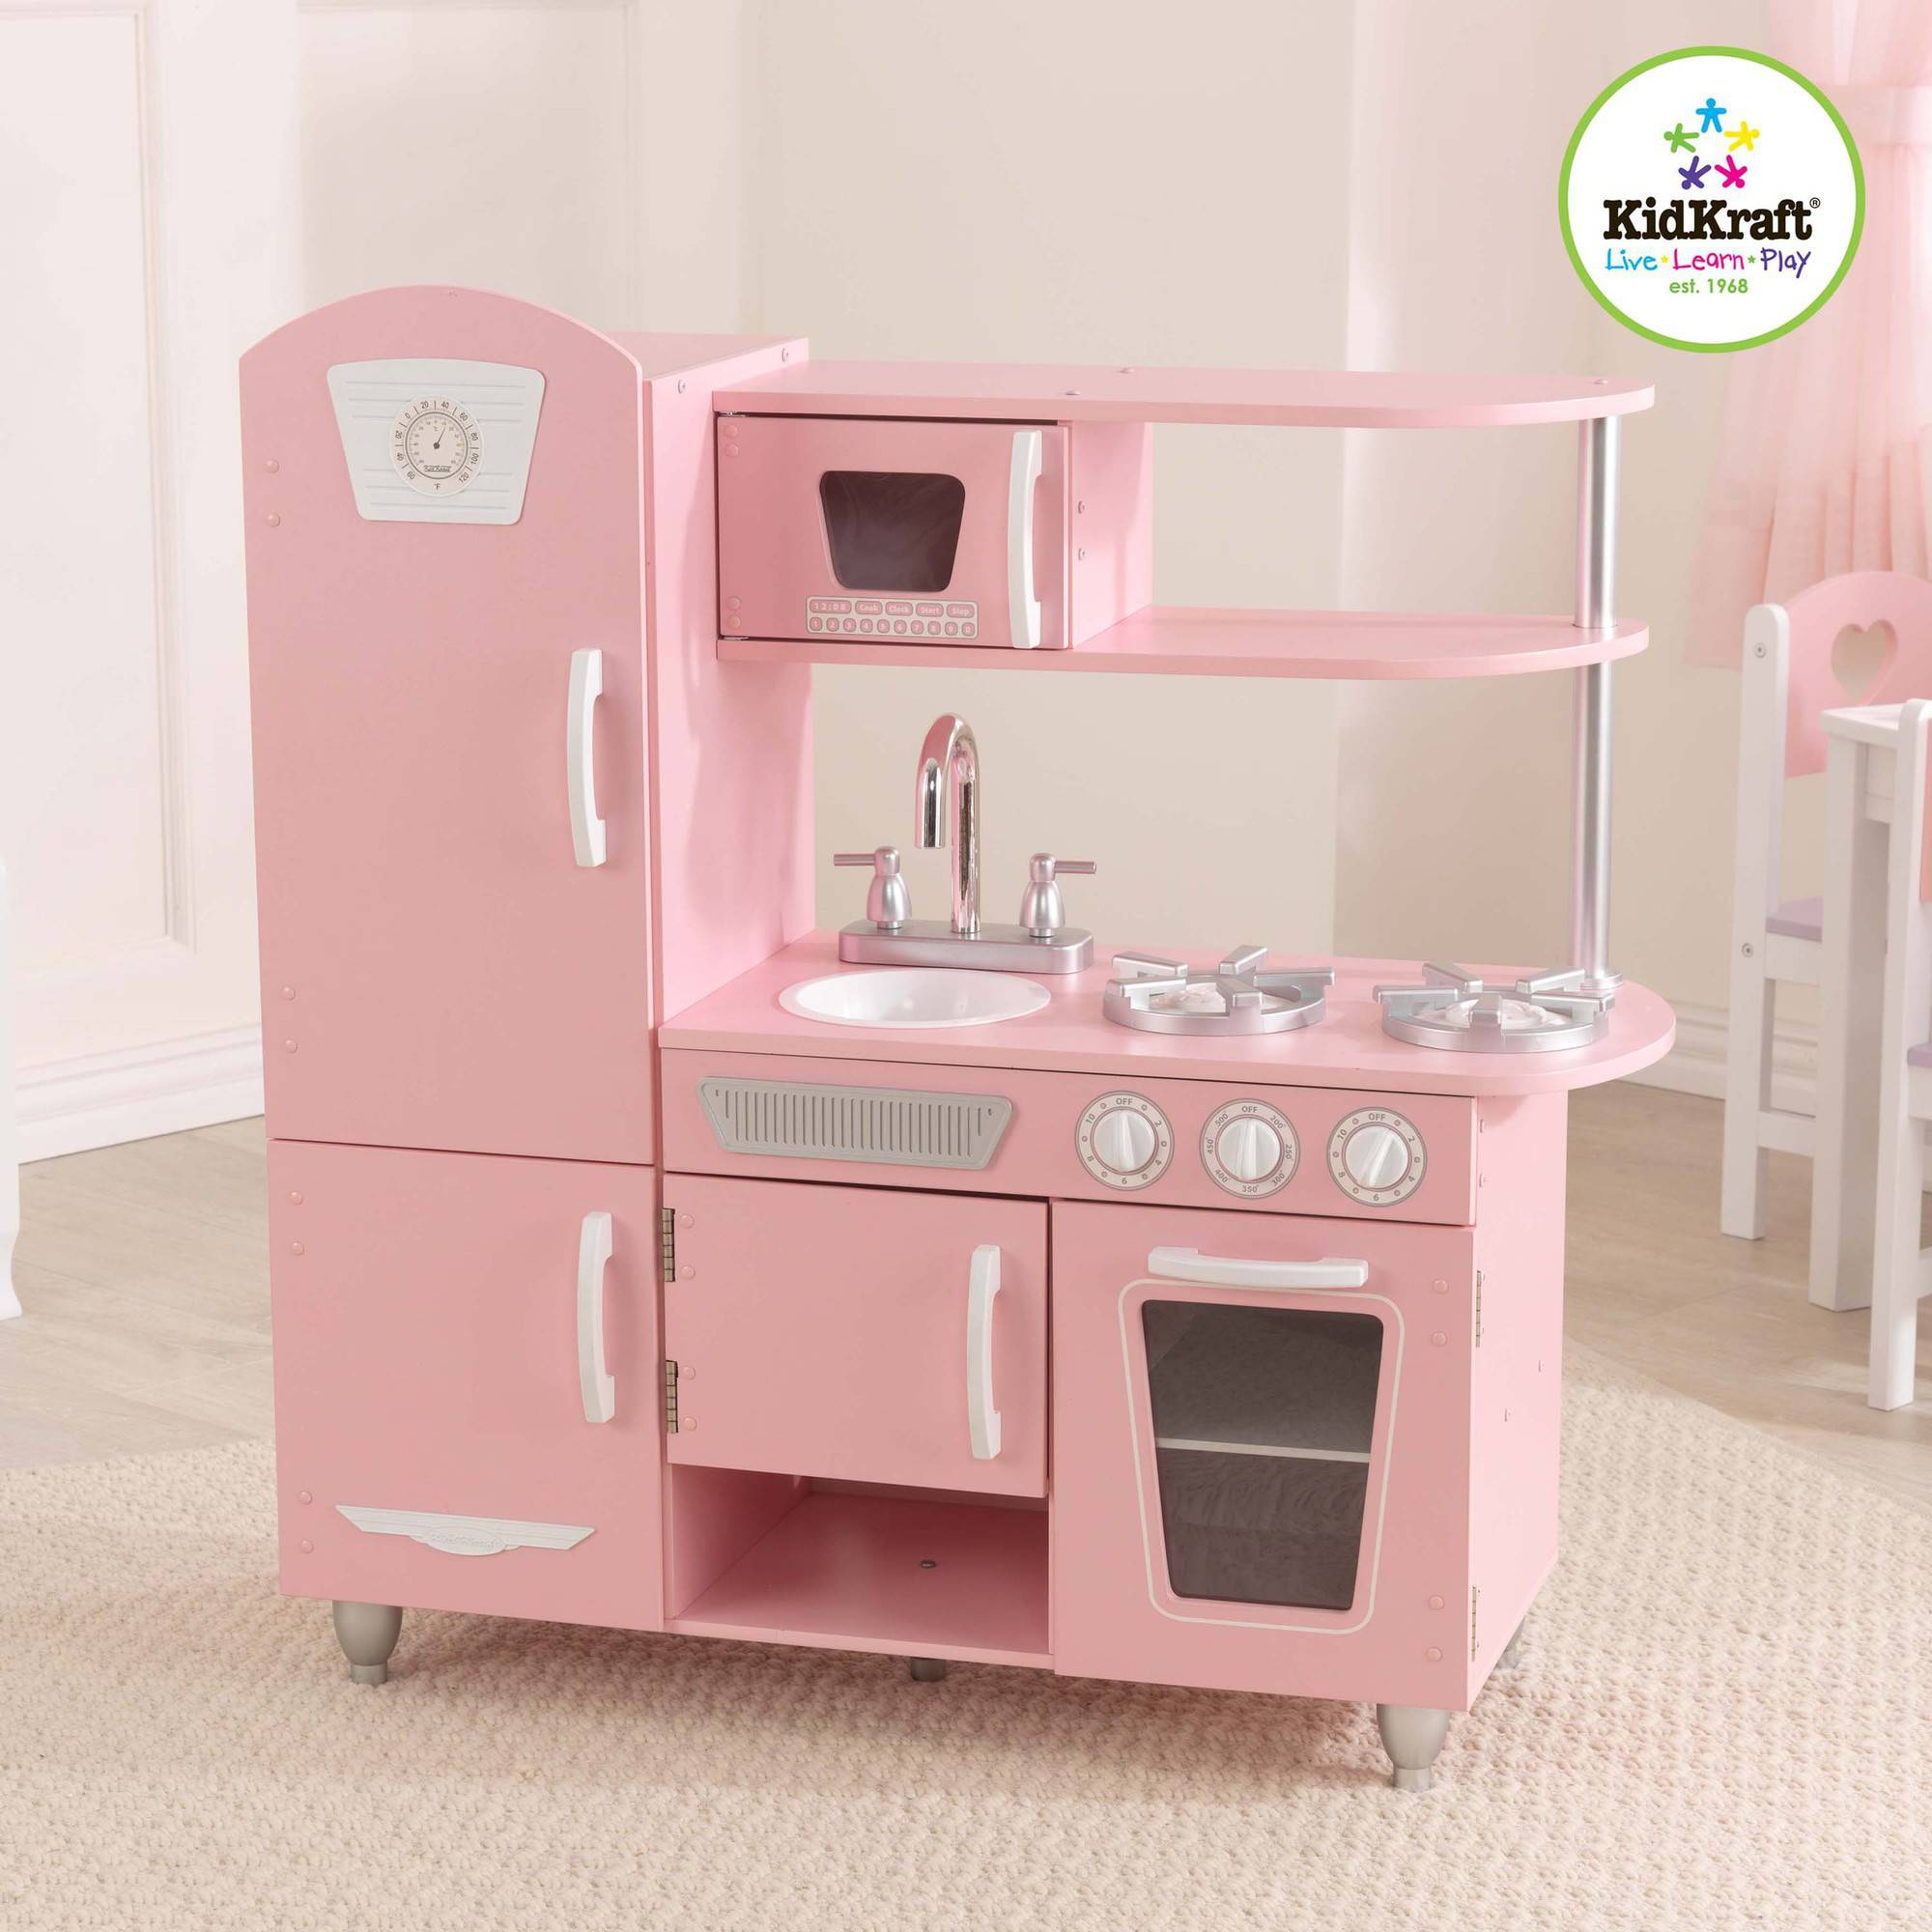 Kidkraft Wooden Play Kitchen kidkraft vintage wooden play kitchen, pink | ebay